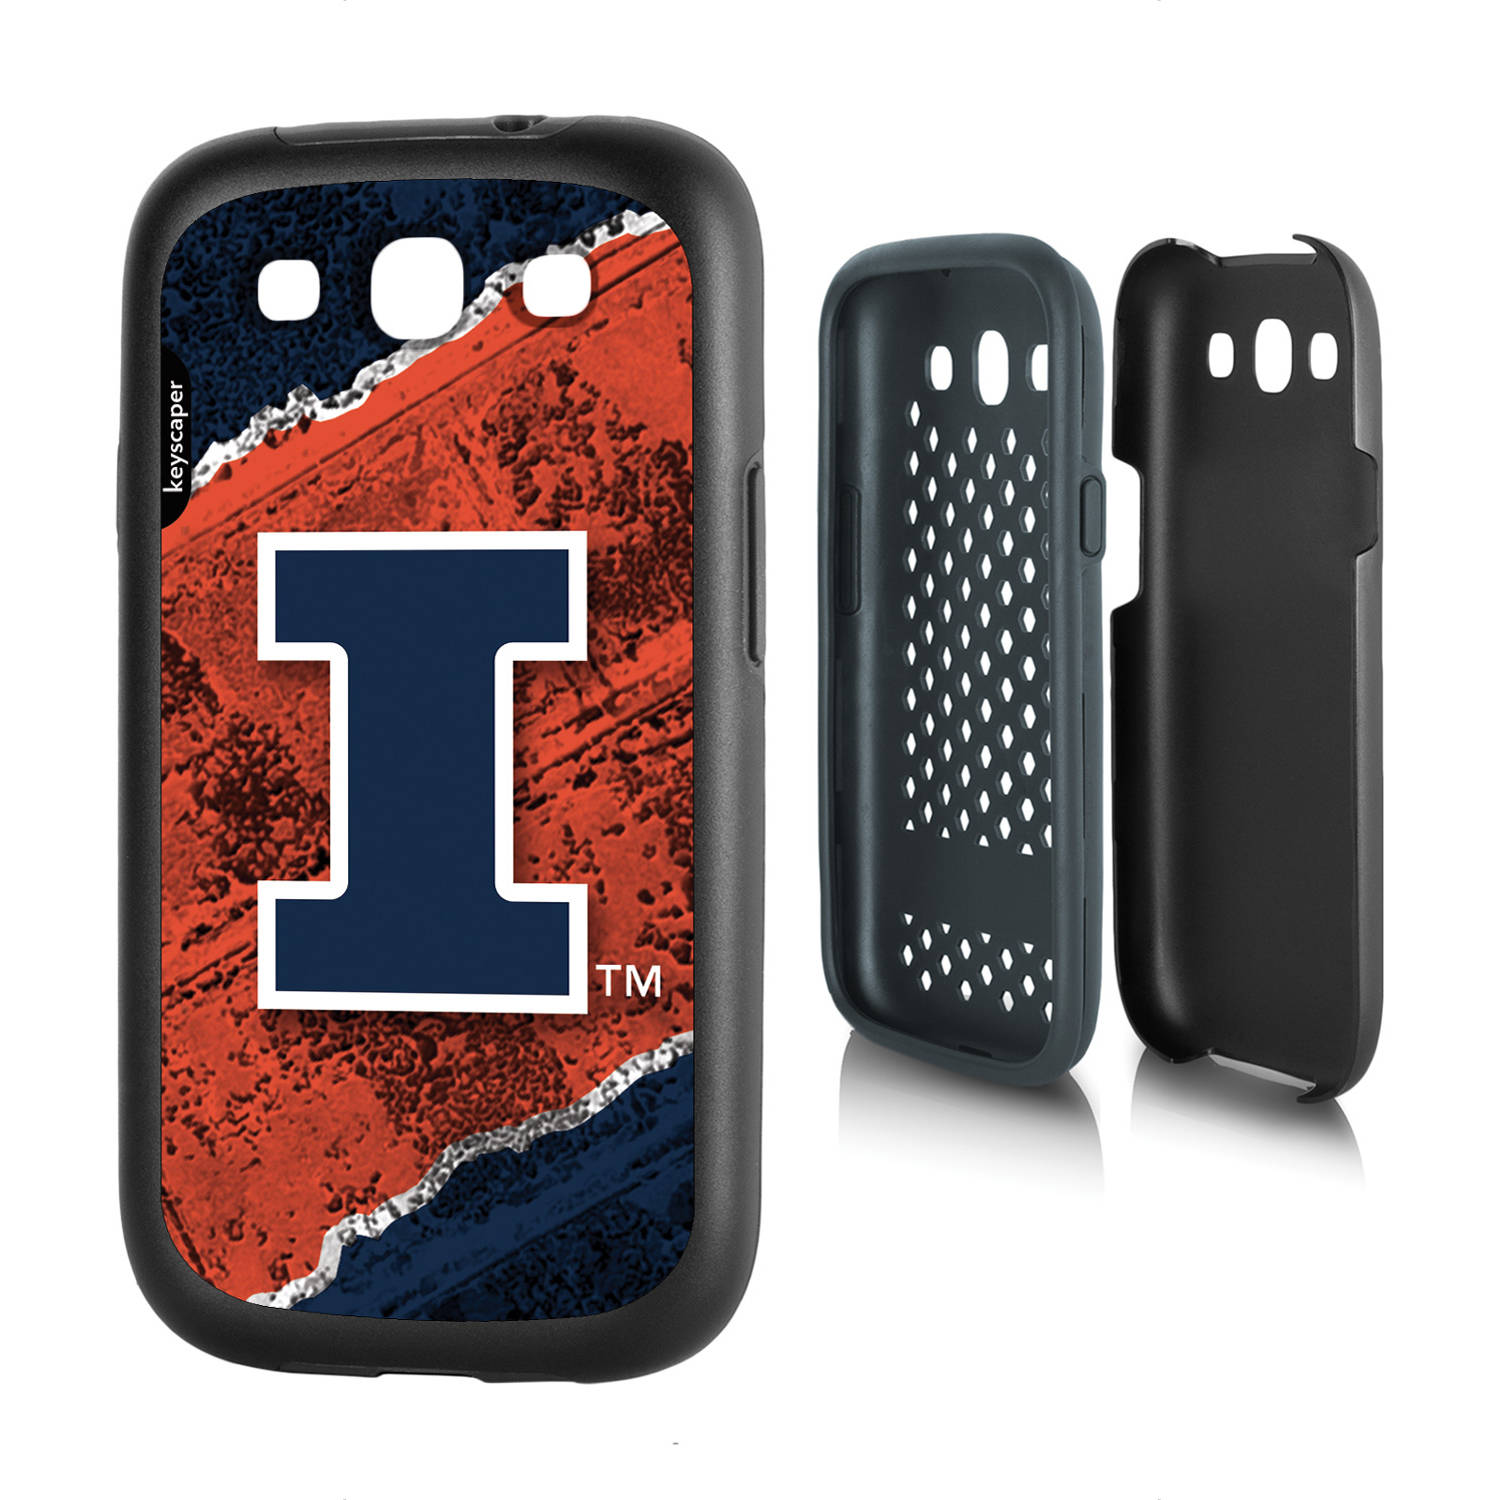 Illinois Fightin' Illini Galaxy S3 Rugged Case